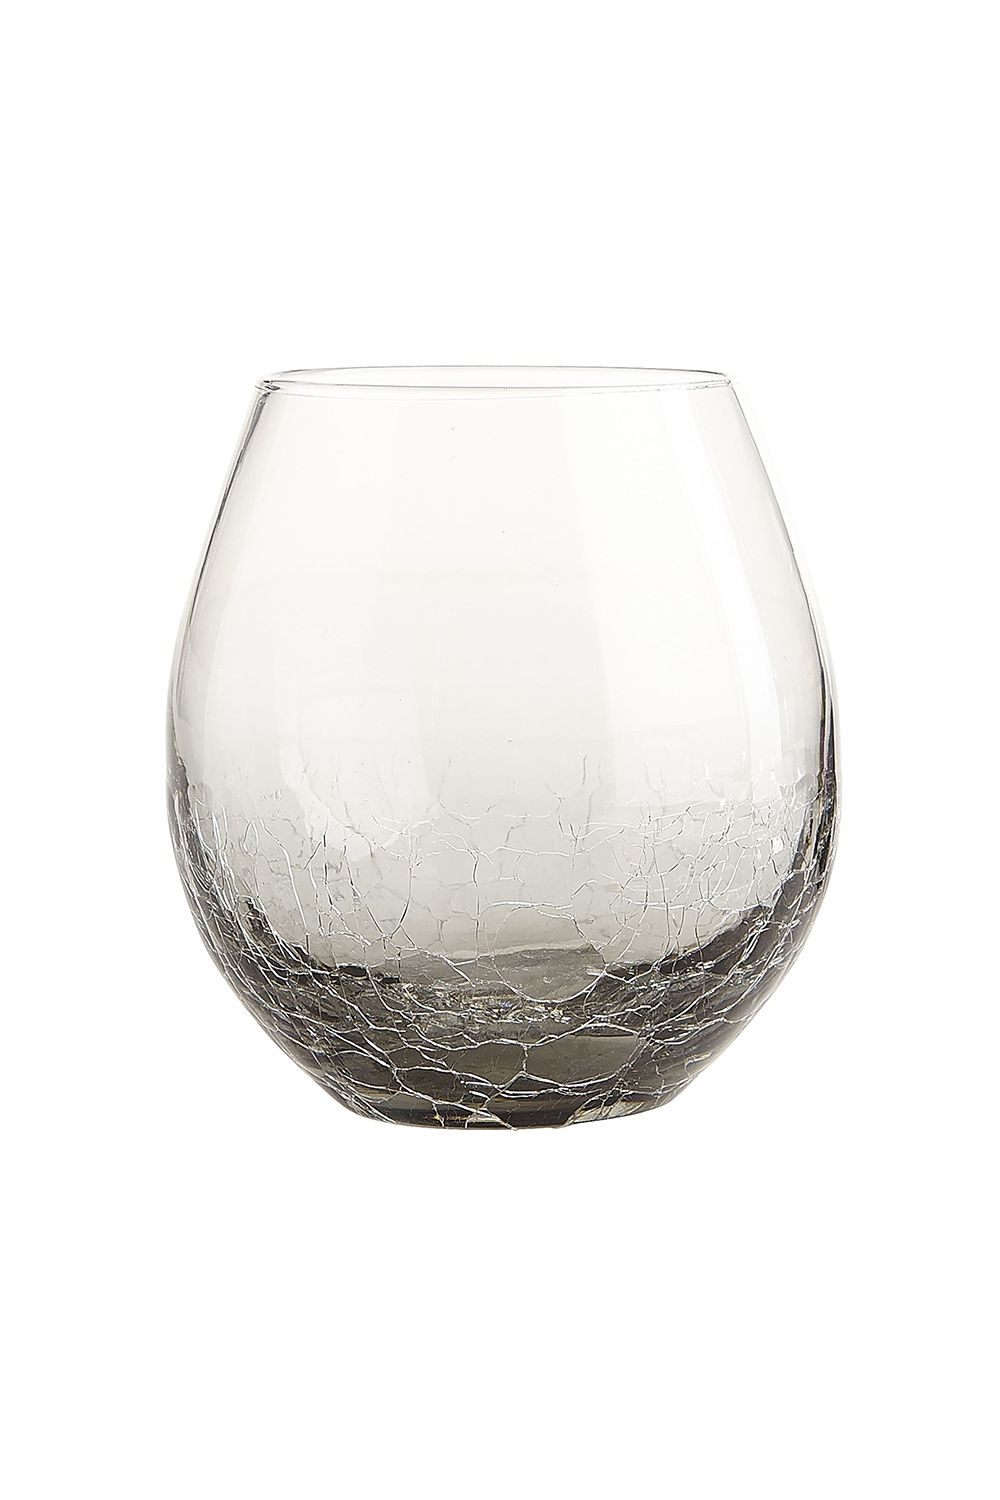 "<p>Matching set = you got it together, girl. </p><p>Pier 1 Crackle Smoke Stemless Wine Glass, $5; <a href=""http://www.pier1.com/crackle-smoke-stemware/PS51494.html"" target=""_blank"" data-tracking-id=""recirc-text-link"">pier1.com</a></p>"